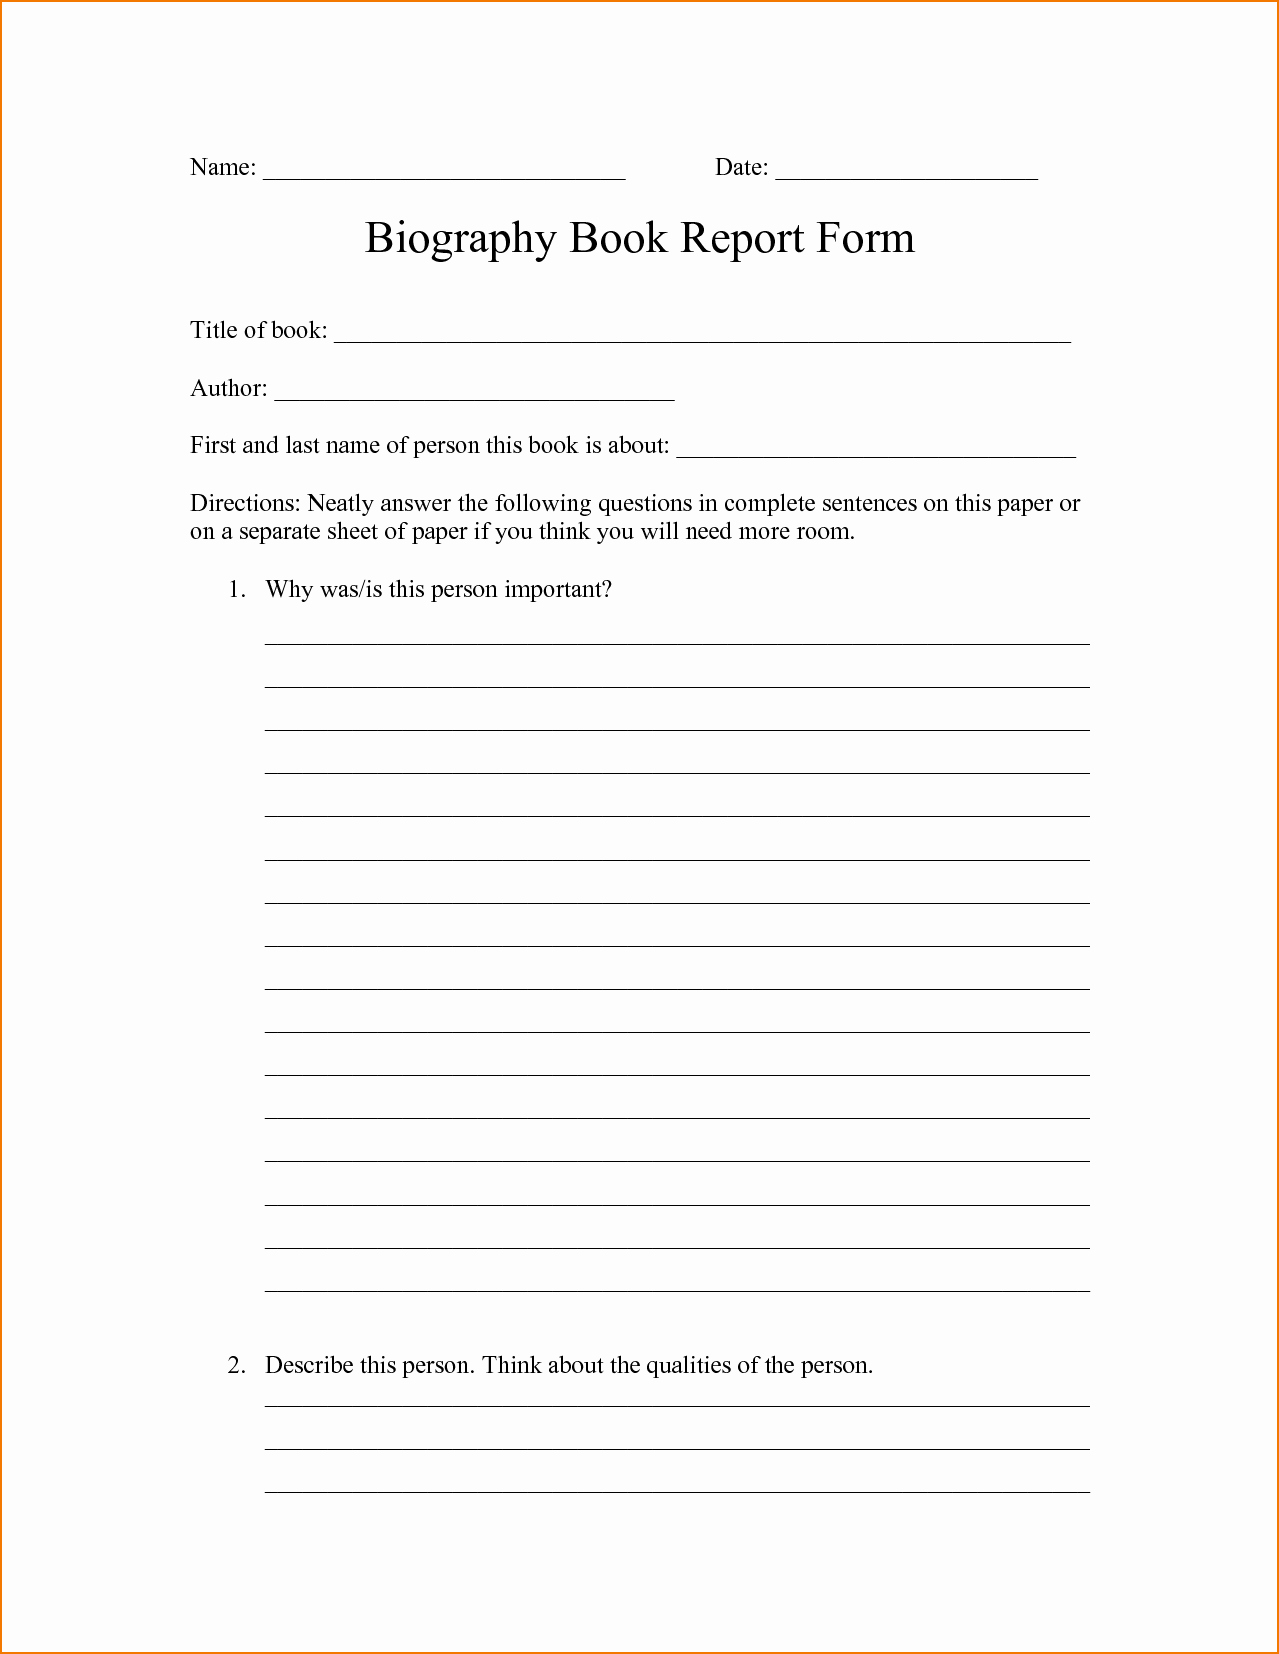 Biography Book Report Template Awesome 4 Biography Report Template